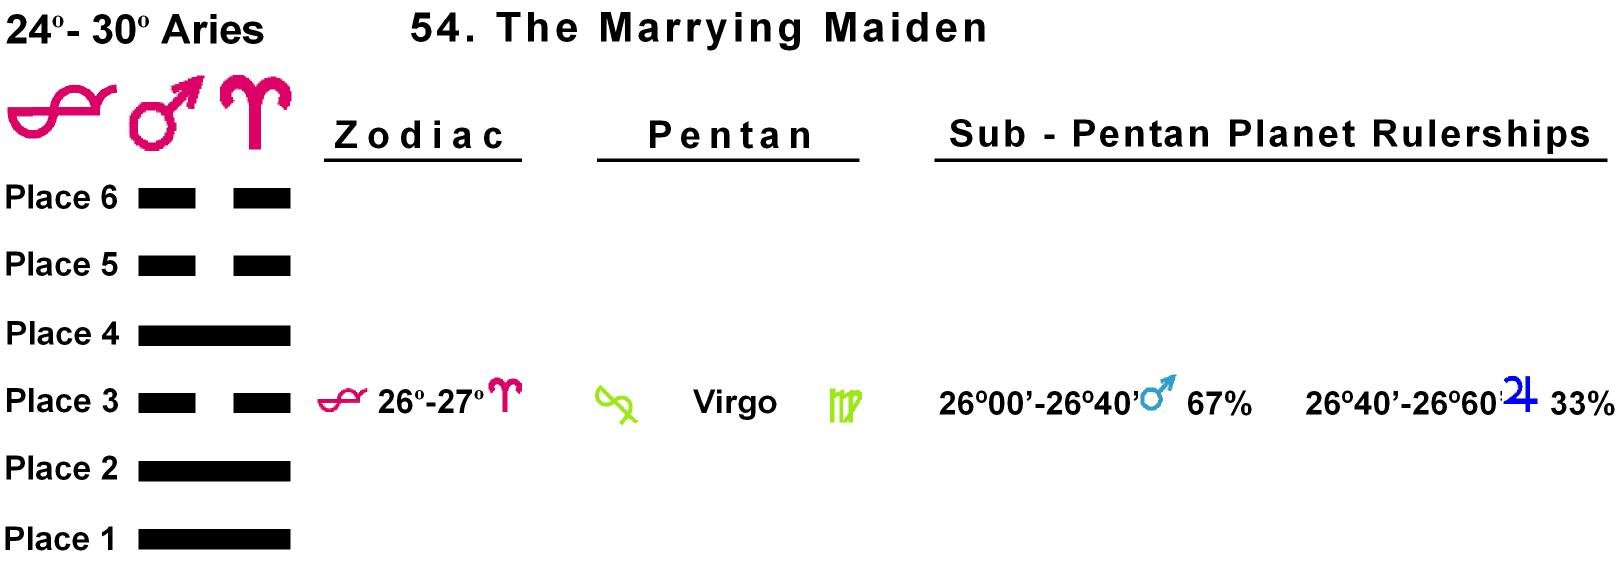 Pent-lines-01AR 26-27 Hx-54 Marrying Maiden